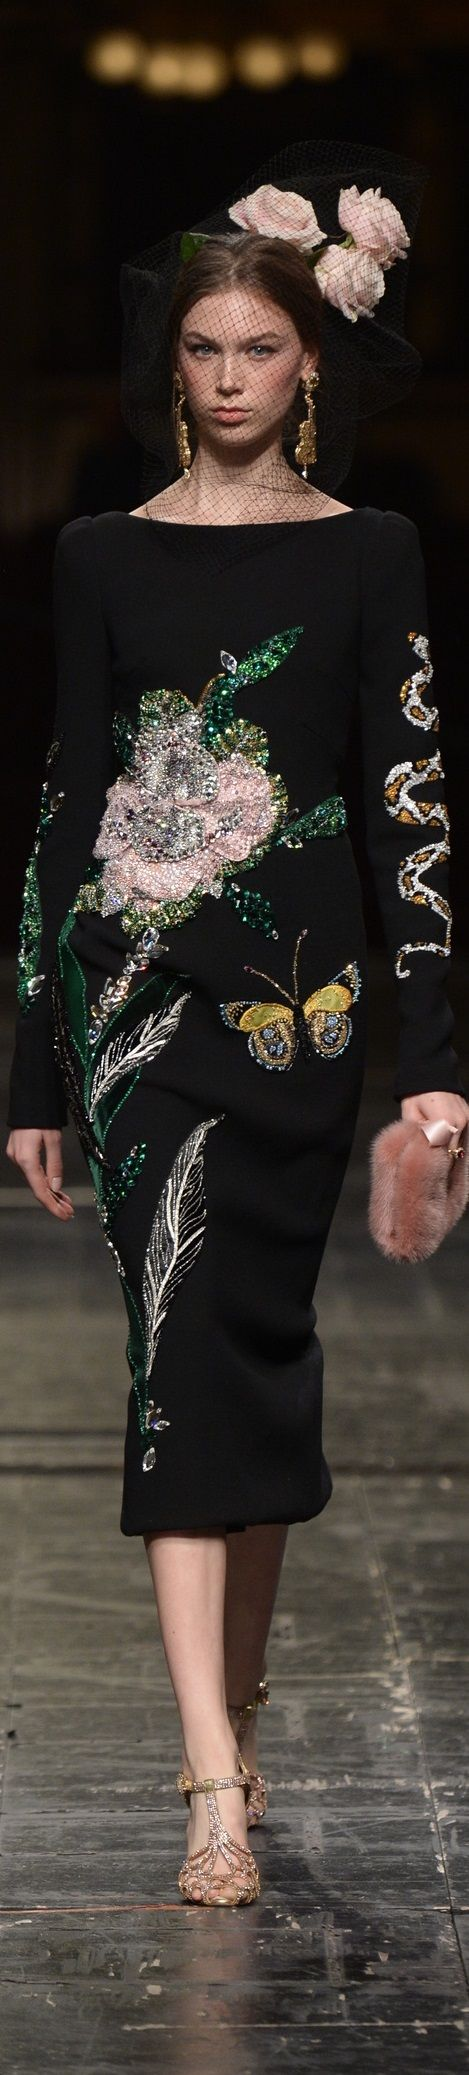 Using dark fabric would allow me to highlight the embroidery well. I could sew butterflies around the peacock feathers.